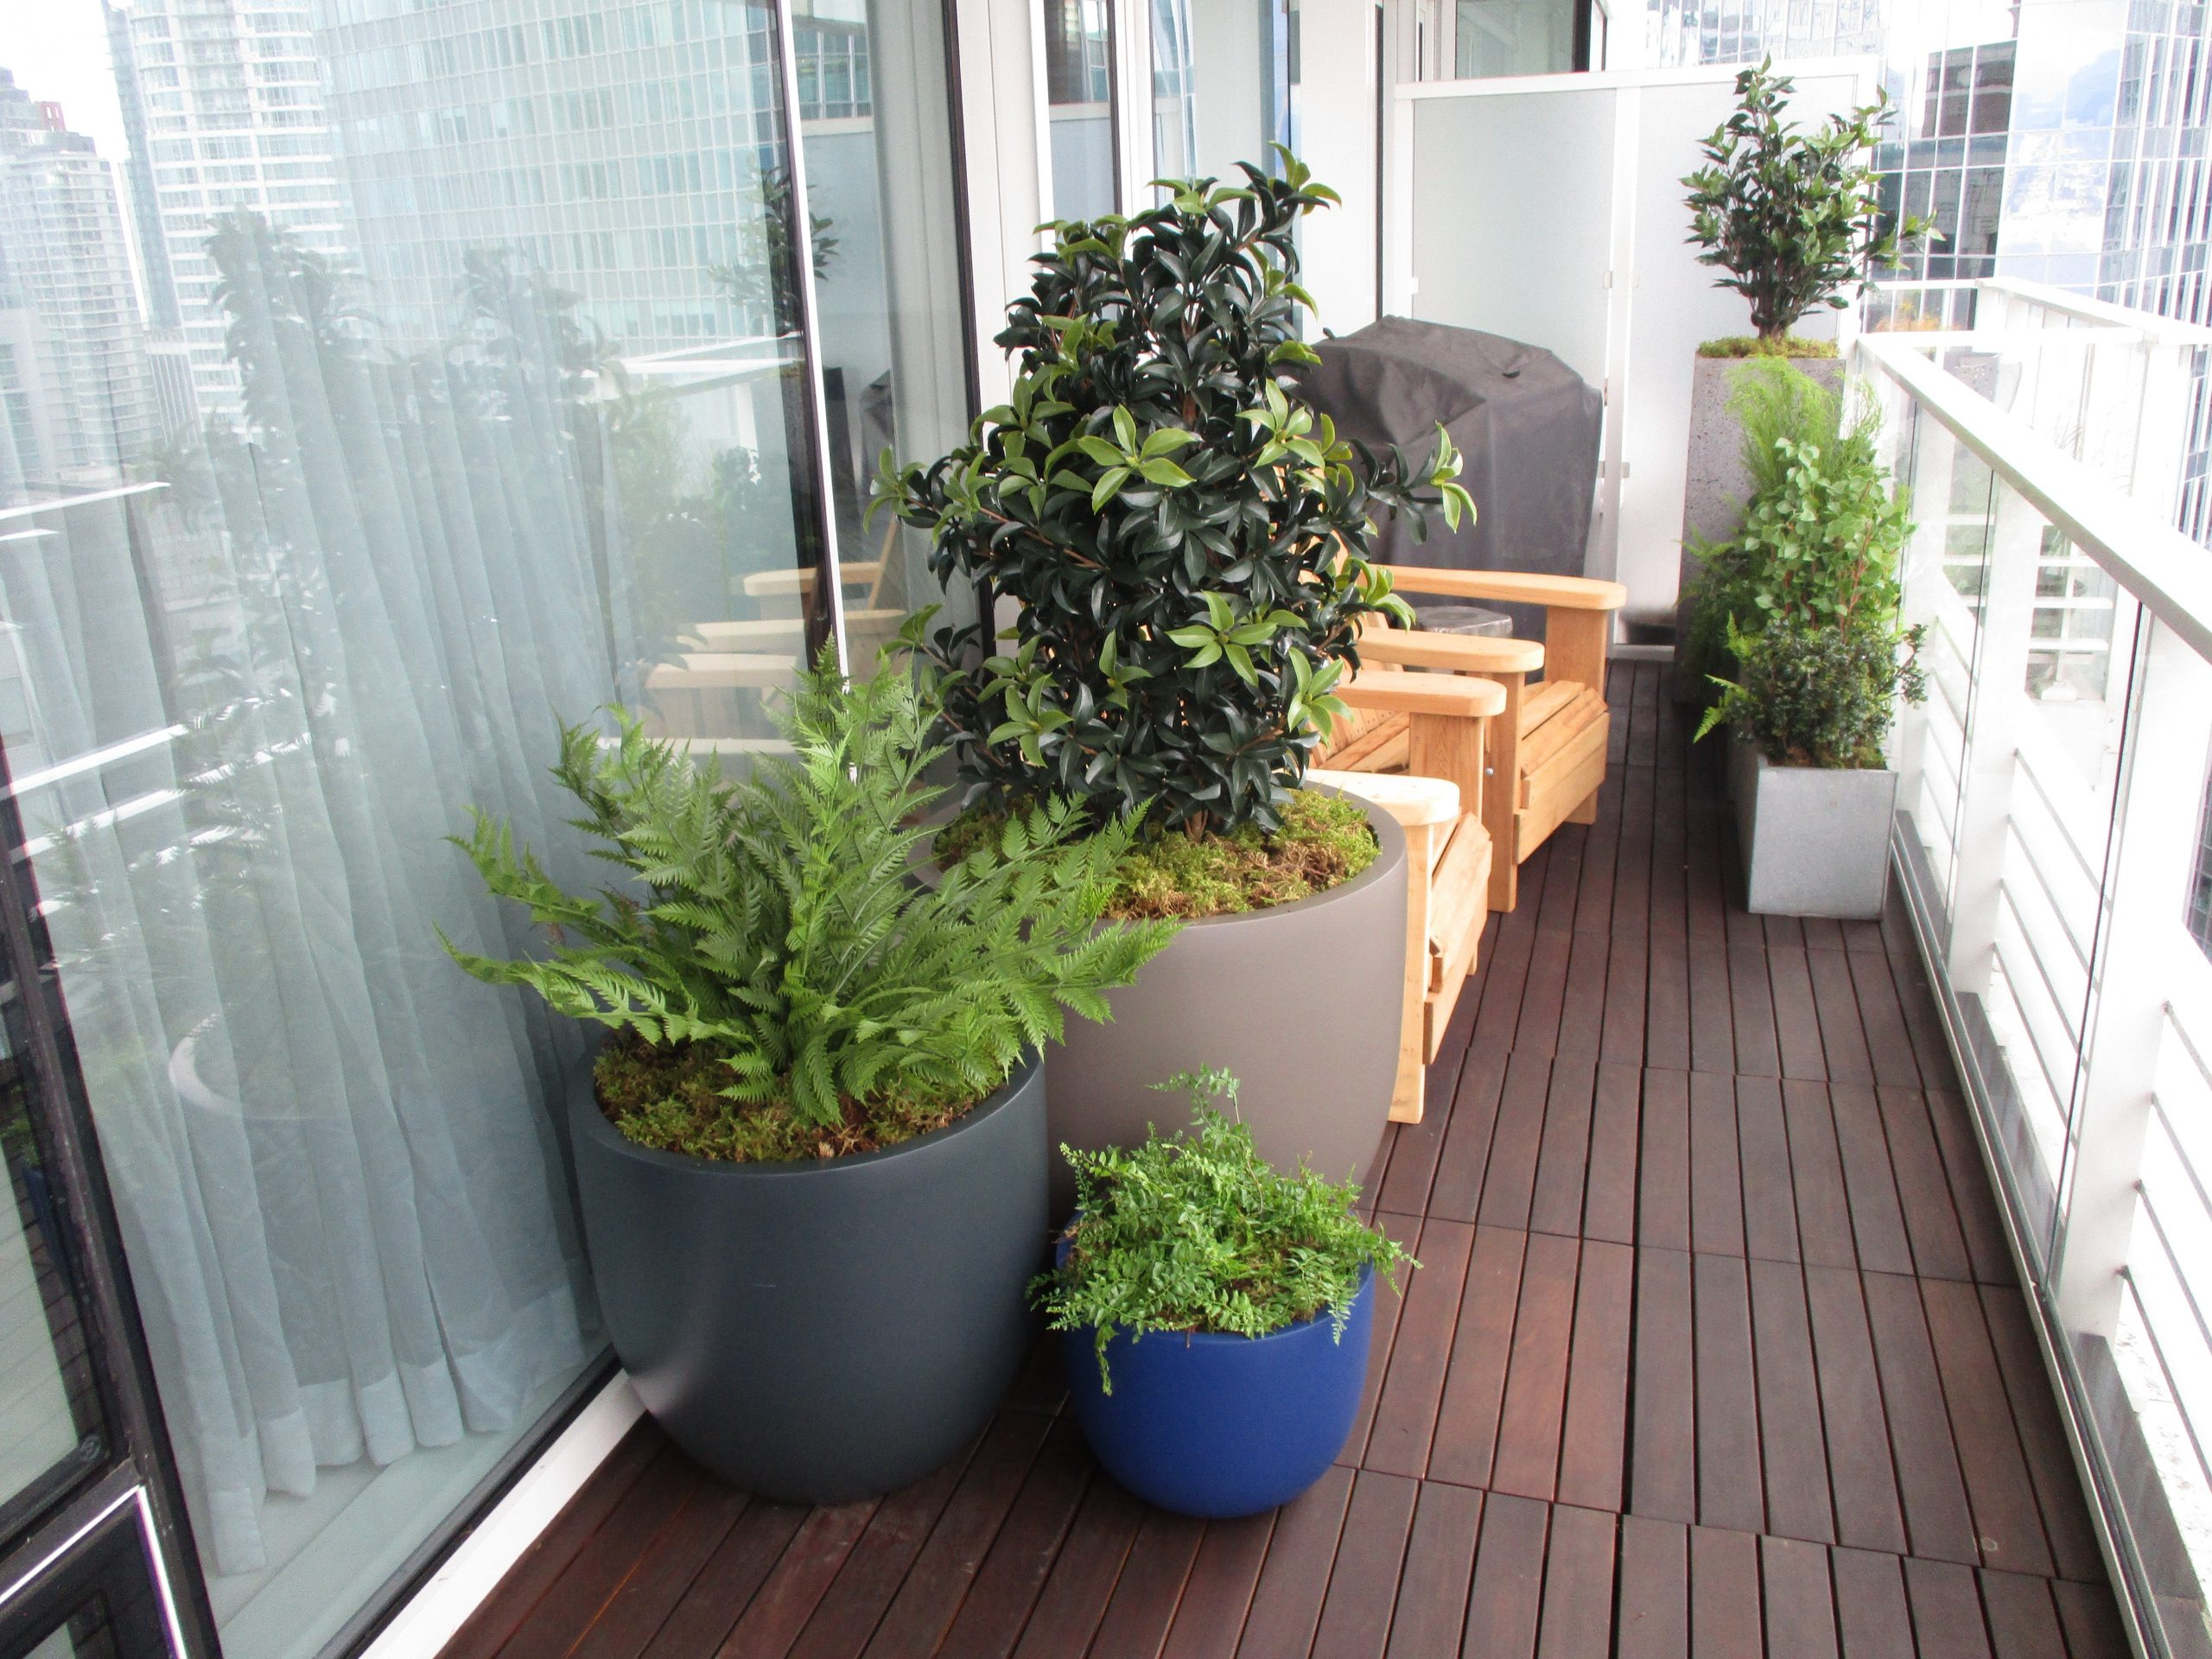 residential condo patio with mixed planters and artificial greenery